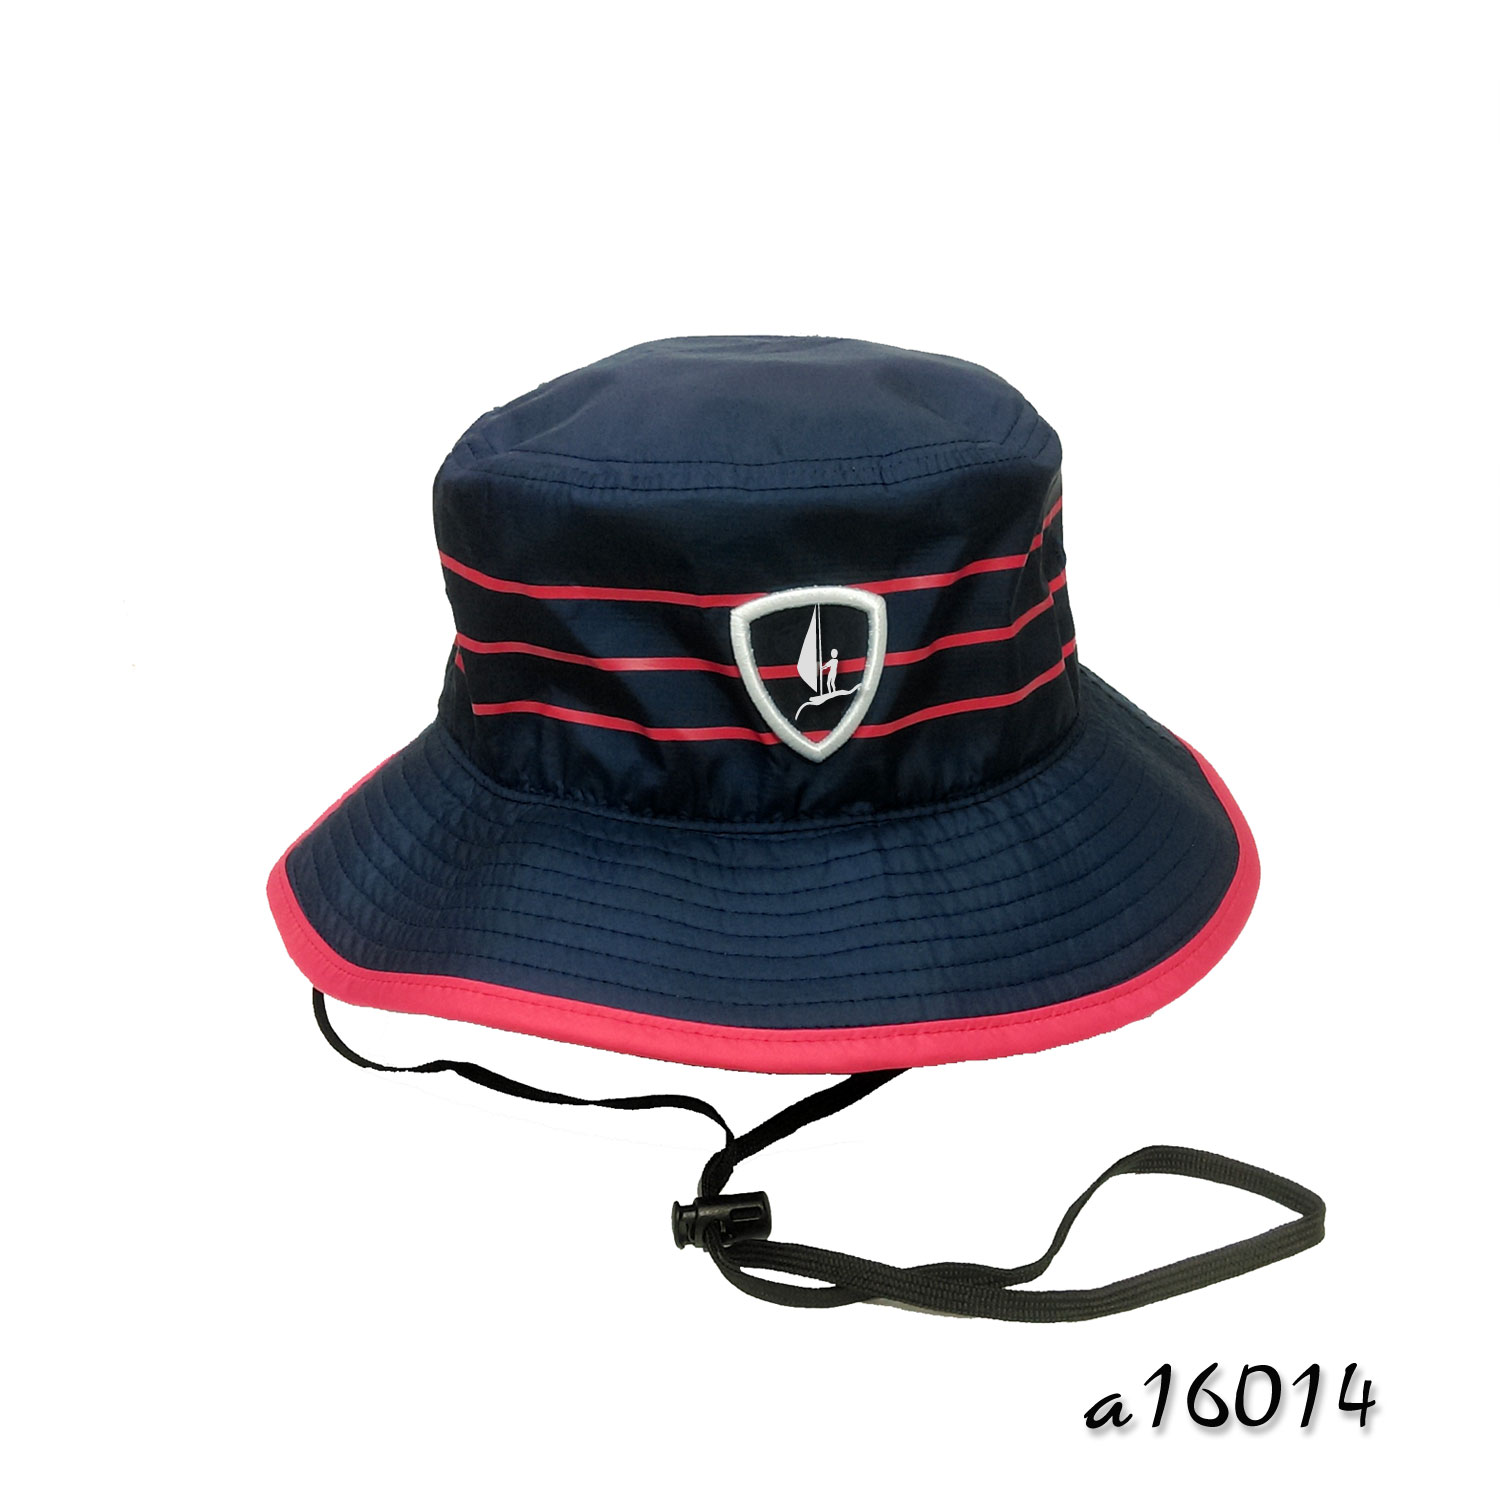 Water Resistant Fisherman Hat with Printed Stripes and contrast binding